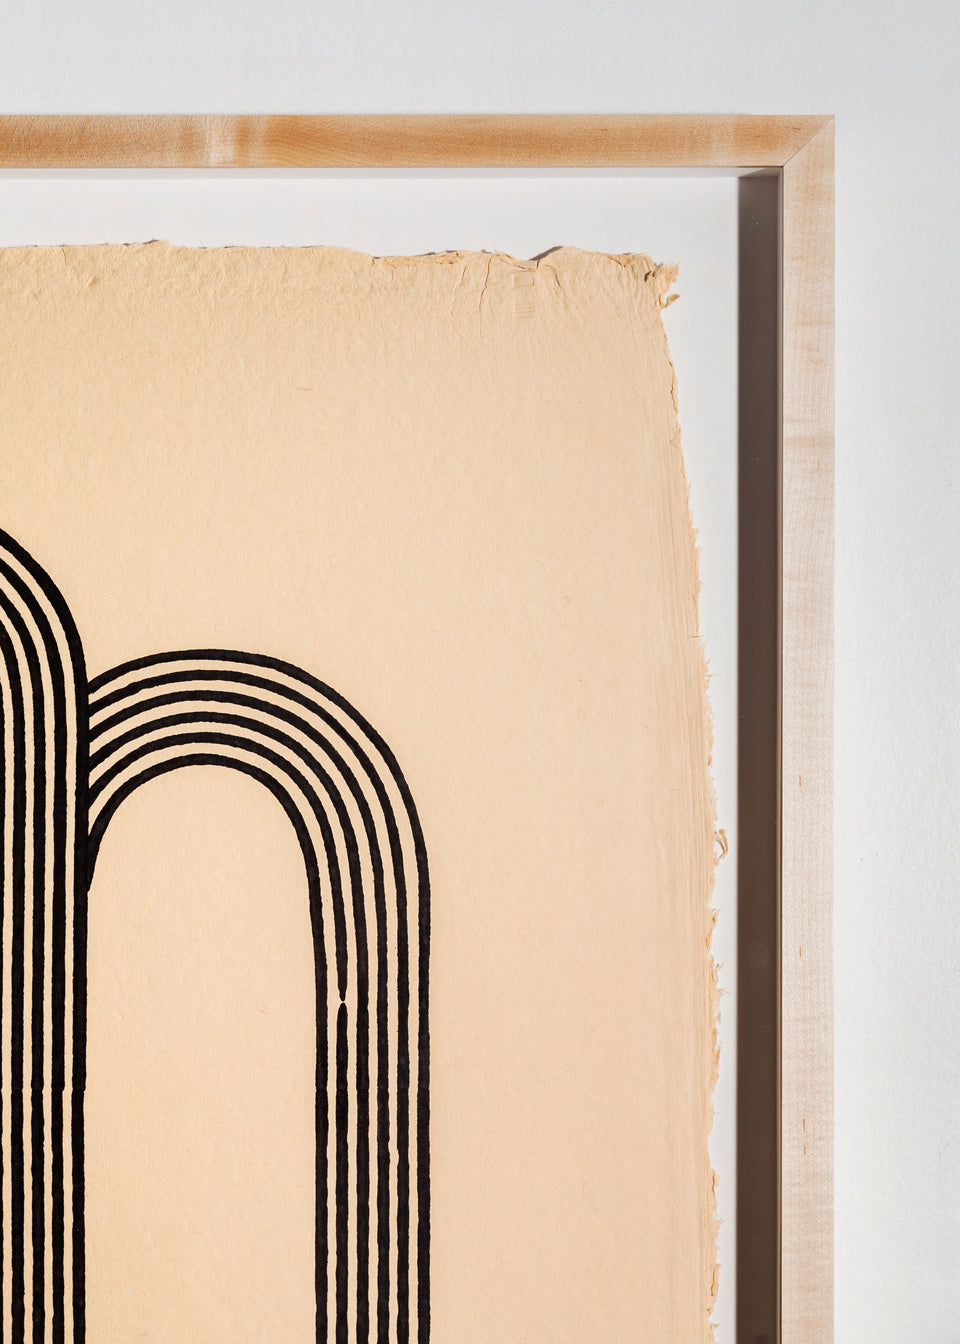 Arches | Woodblock Print